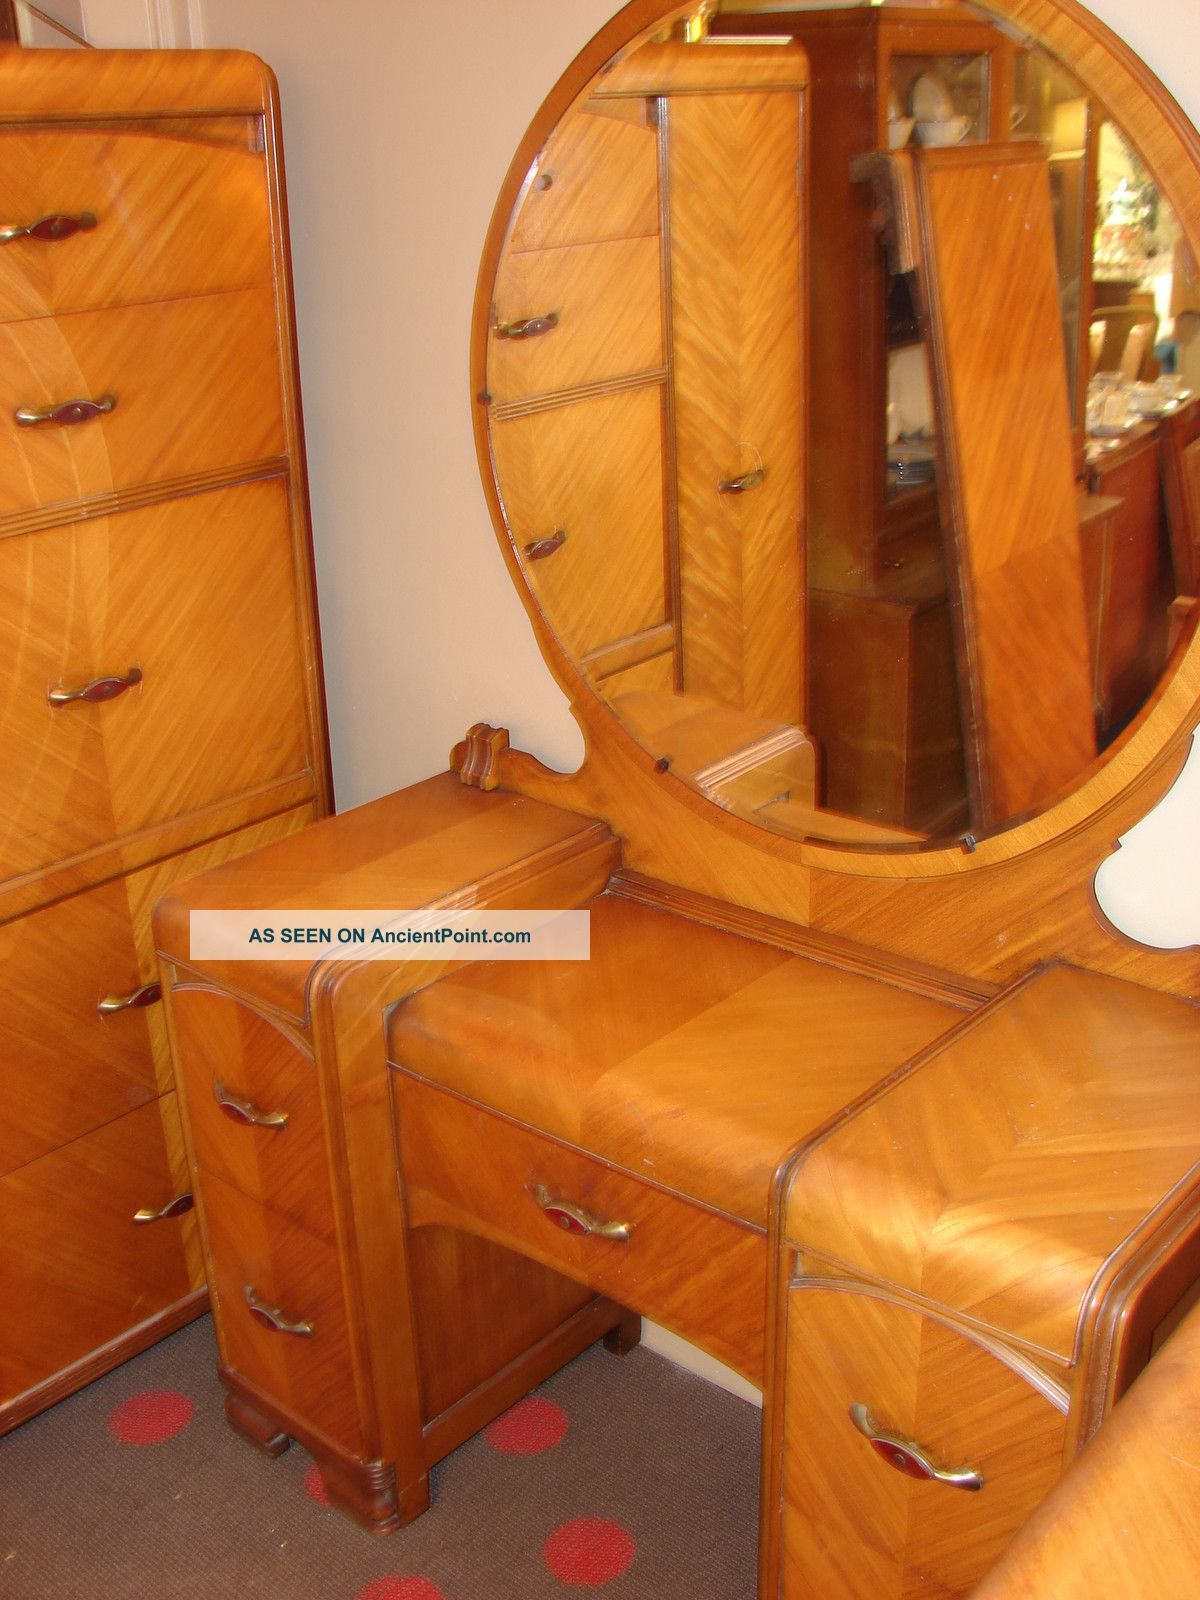 1930s Waterfall Bedroom Suite - 5 Pieces 1900-1950 photo. $900.00 - 5: Waterfall Bedroom Set 1930-40 L.A.Period Furniture C On